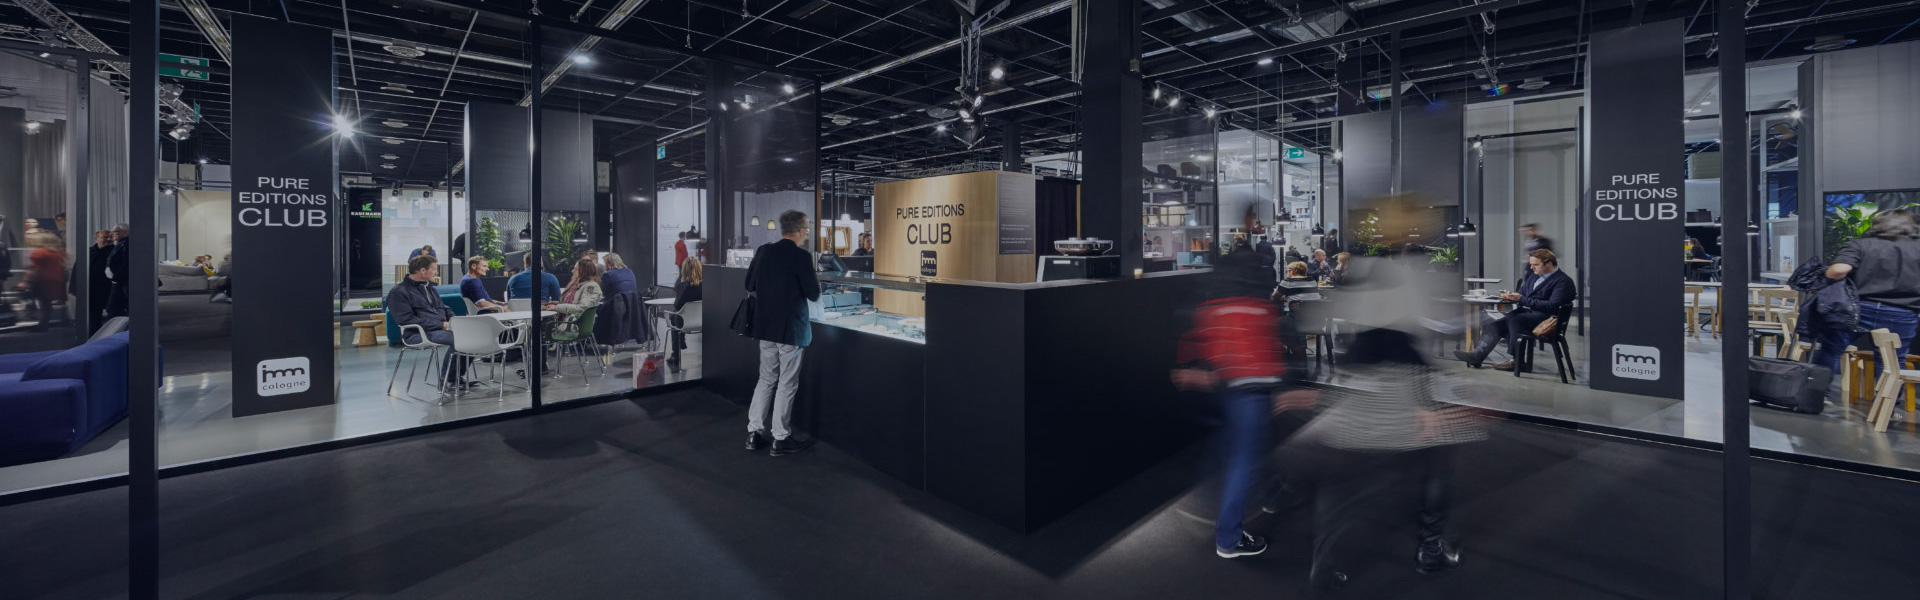 Base Expo, The Company<br>That Connects The World